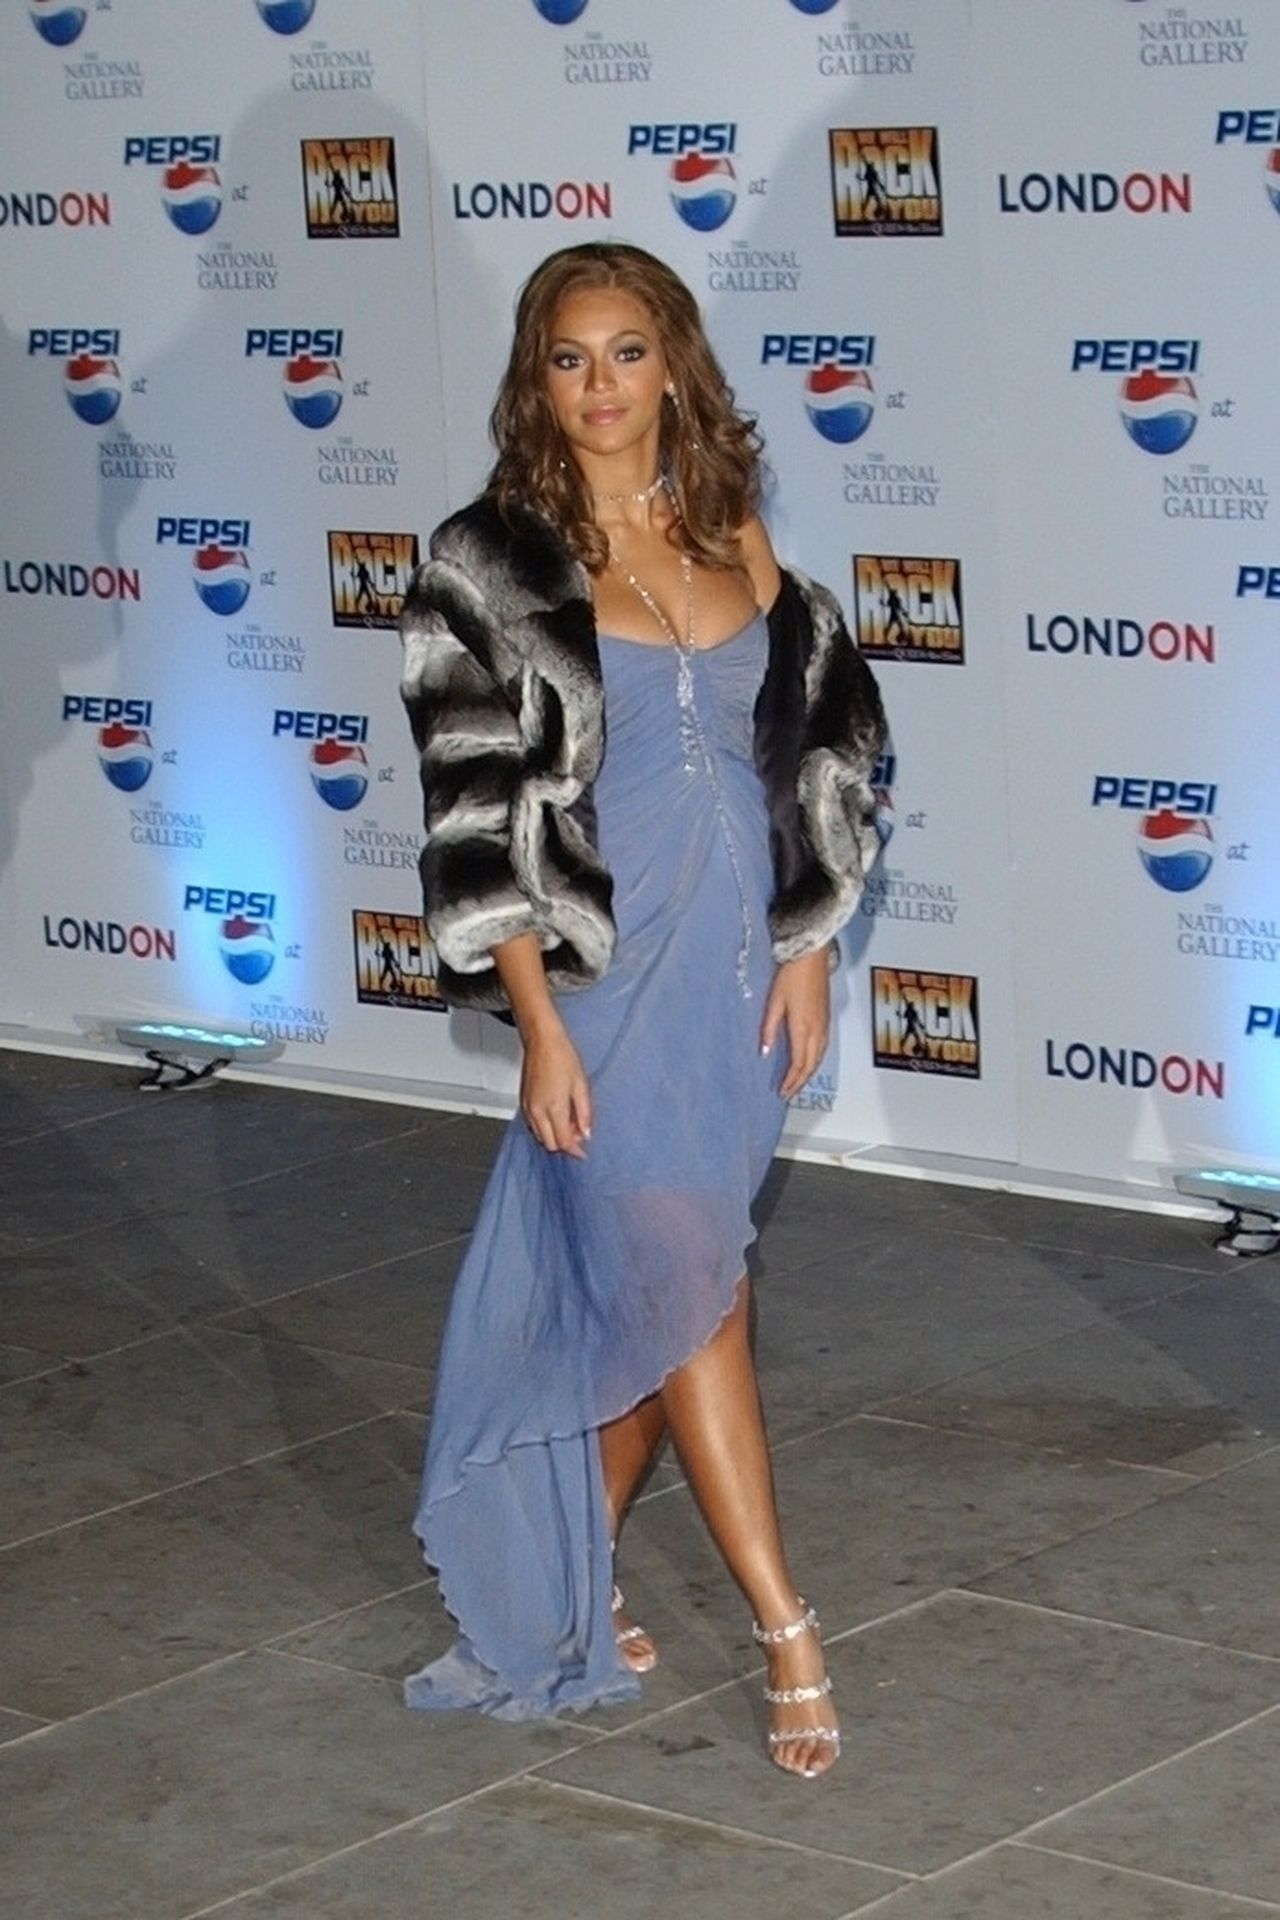 Beyonce Displays Her Cleavage At Pepsi Event In London 0002